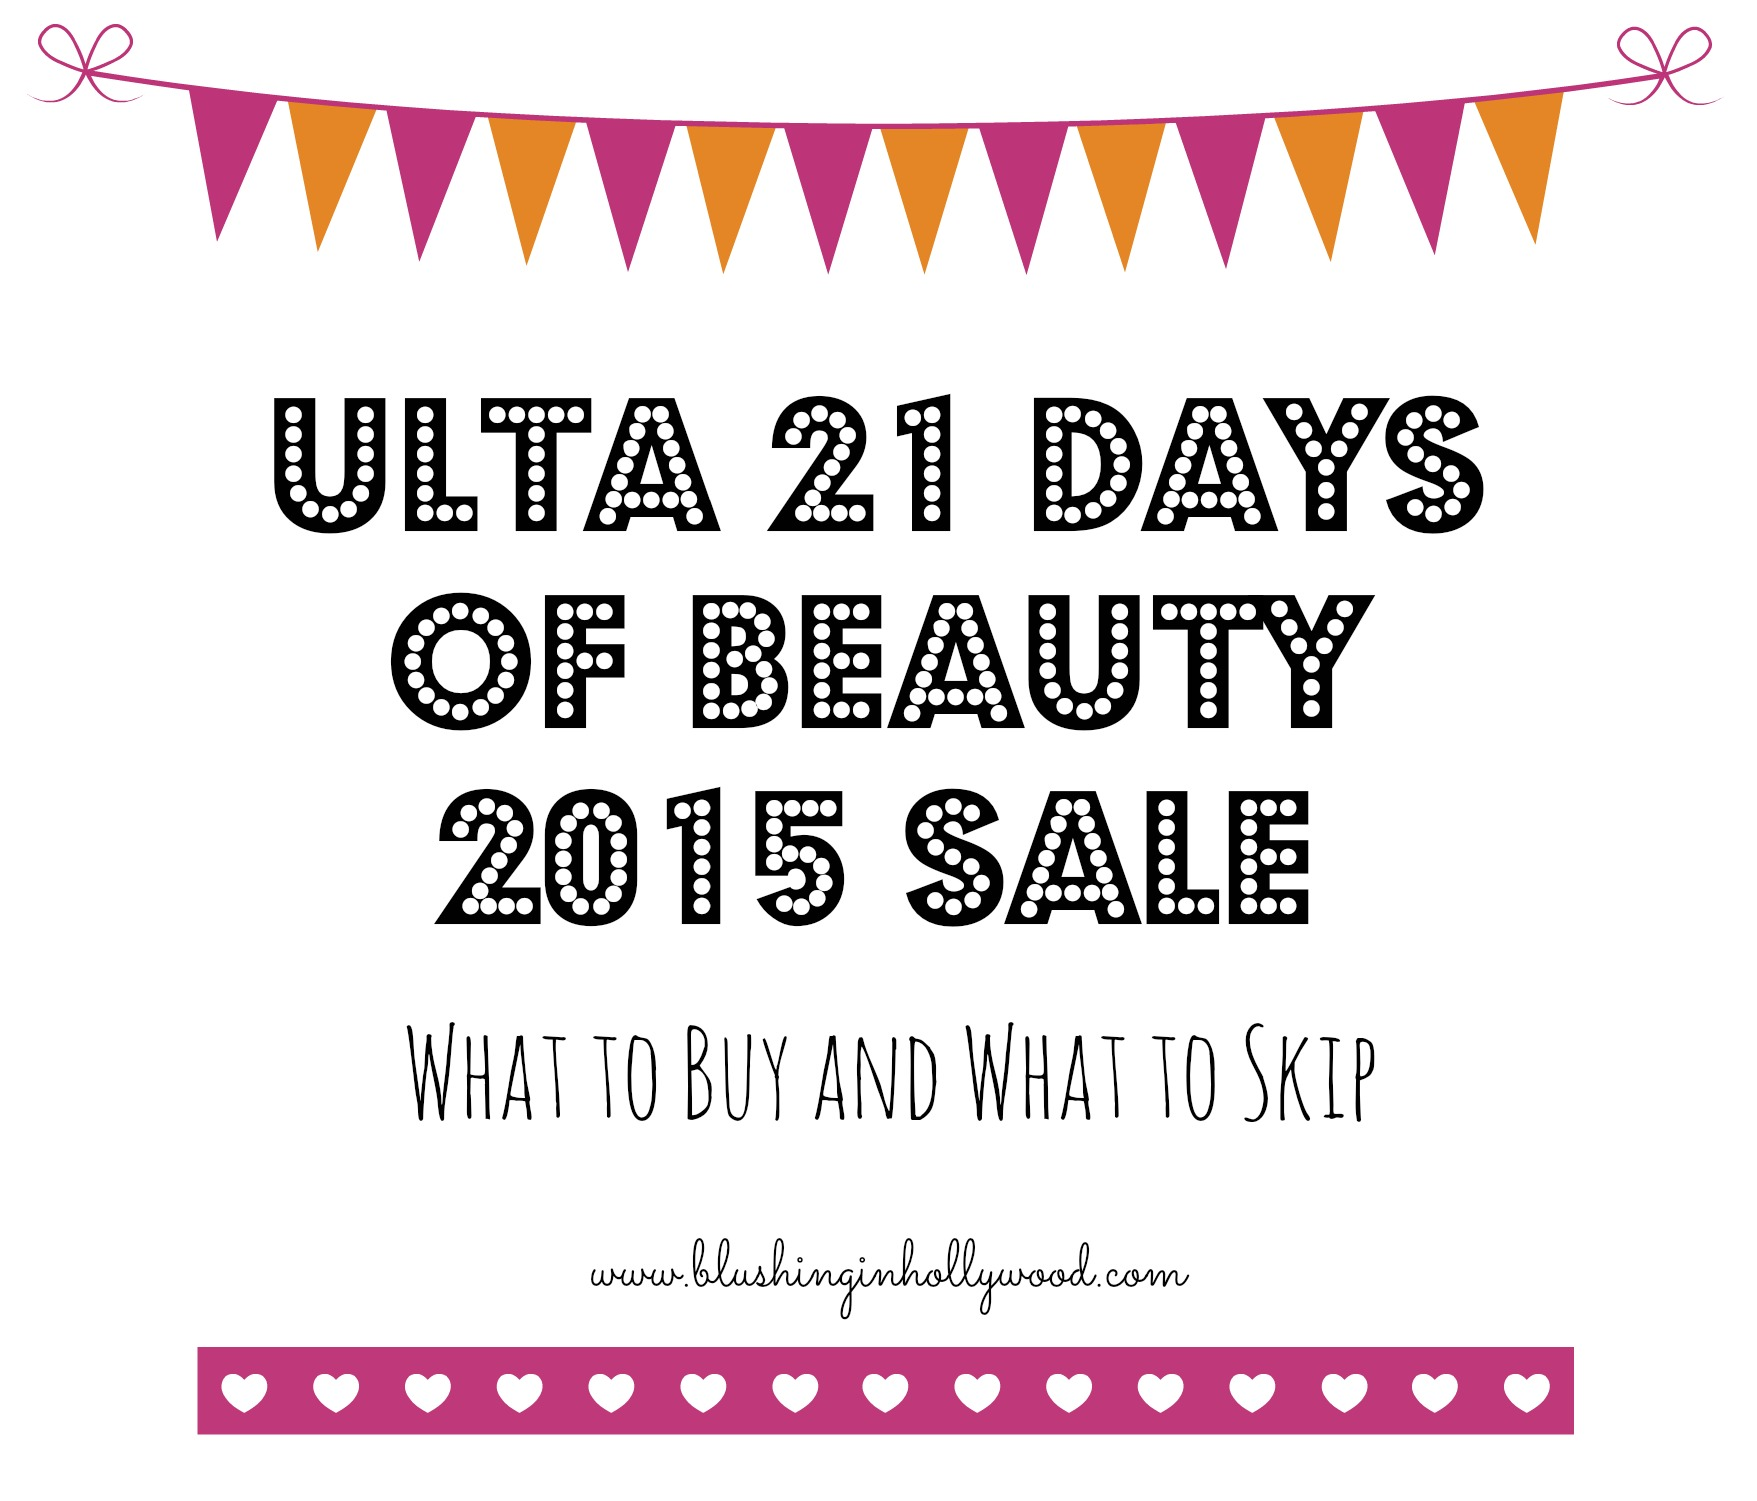 Ulta's 21 Days of Beauty Sale - Blushing in Hollywood